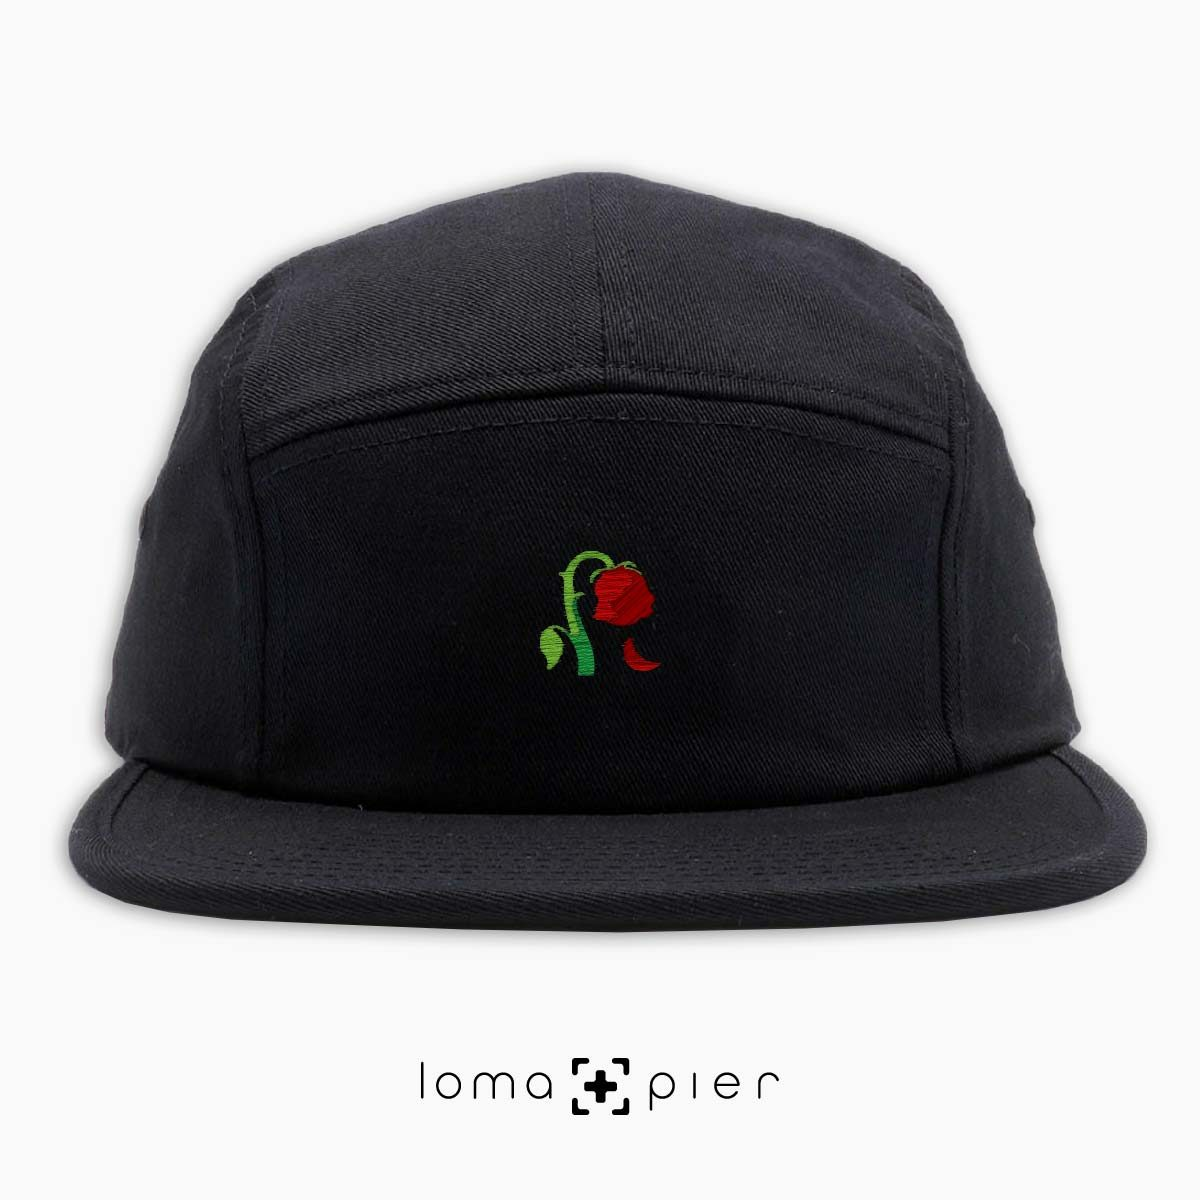 DYING ROSE EMOJI icon embroidered on a black cotton 5-panel hat by loma+pier hat store